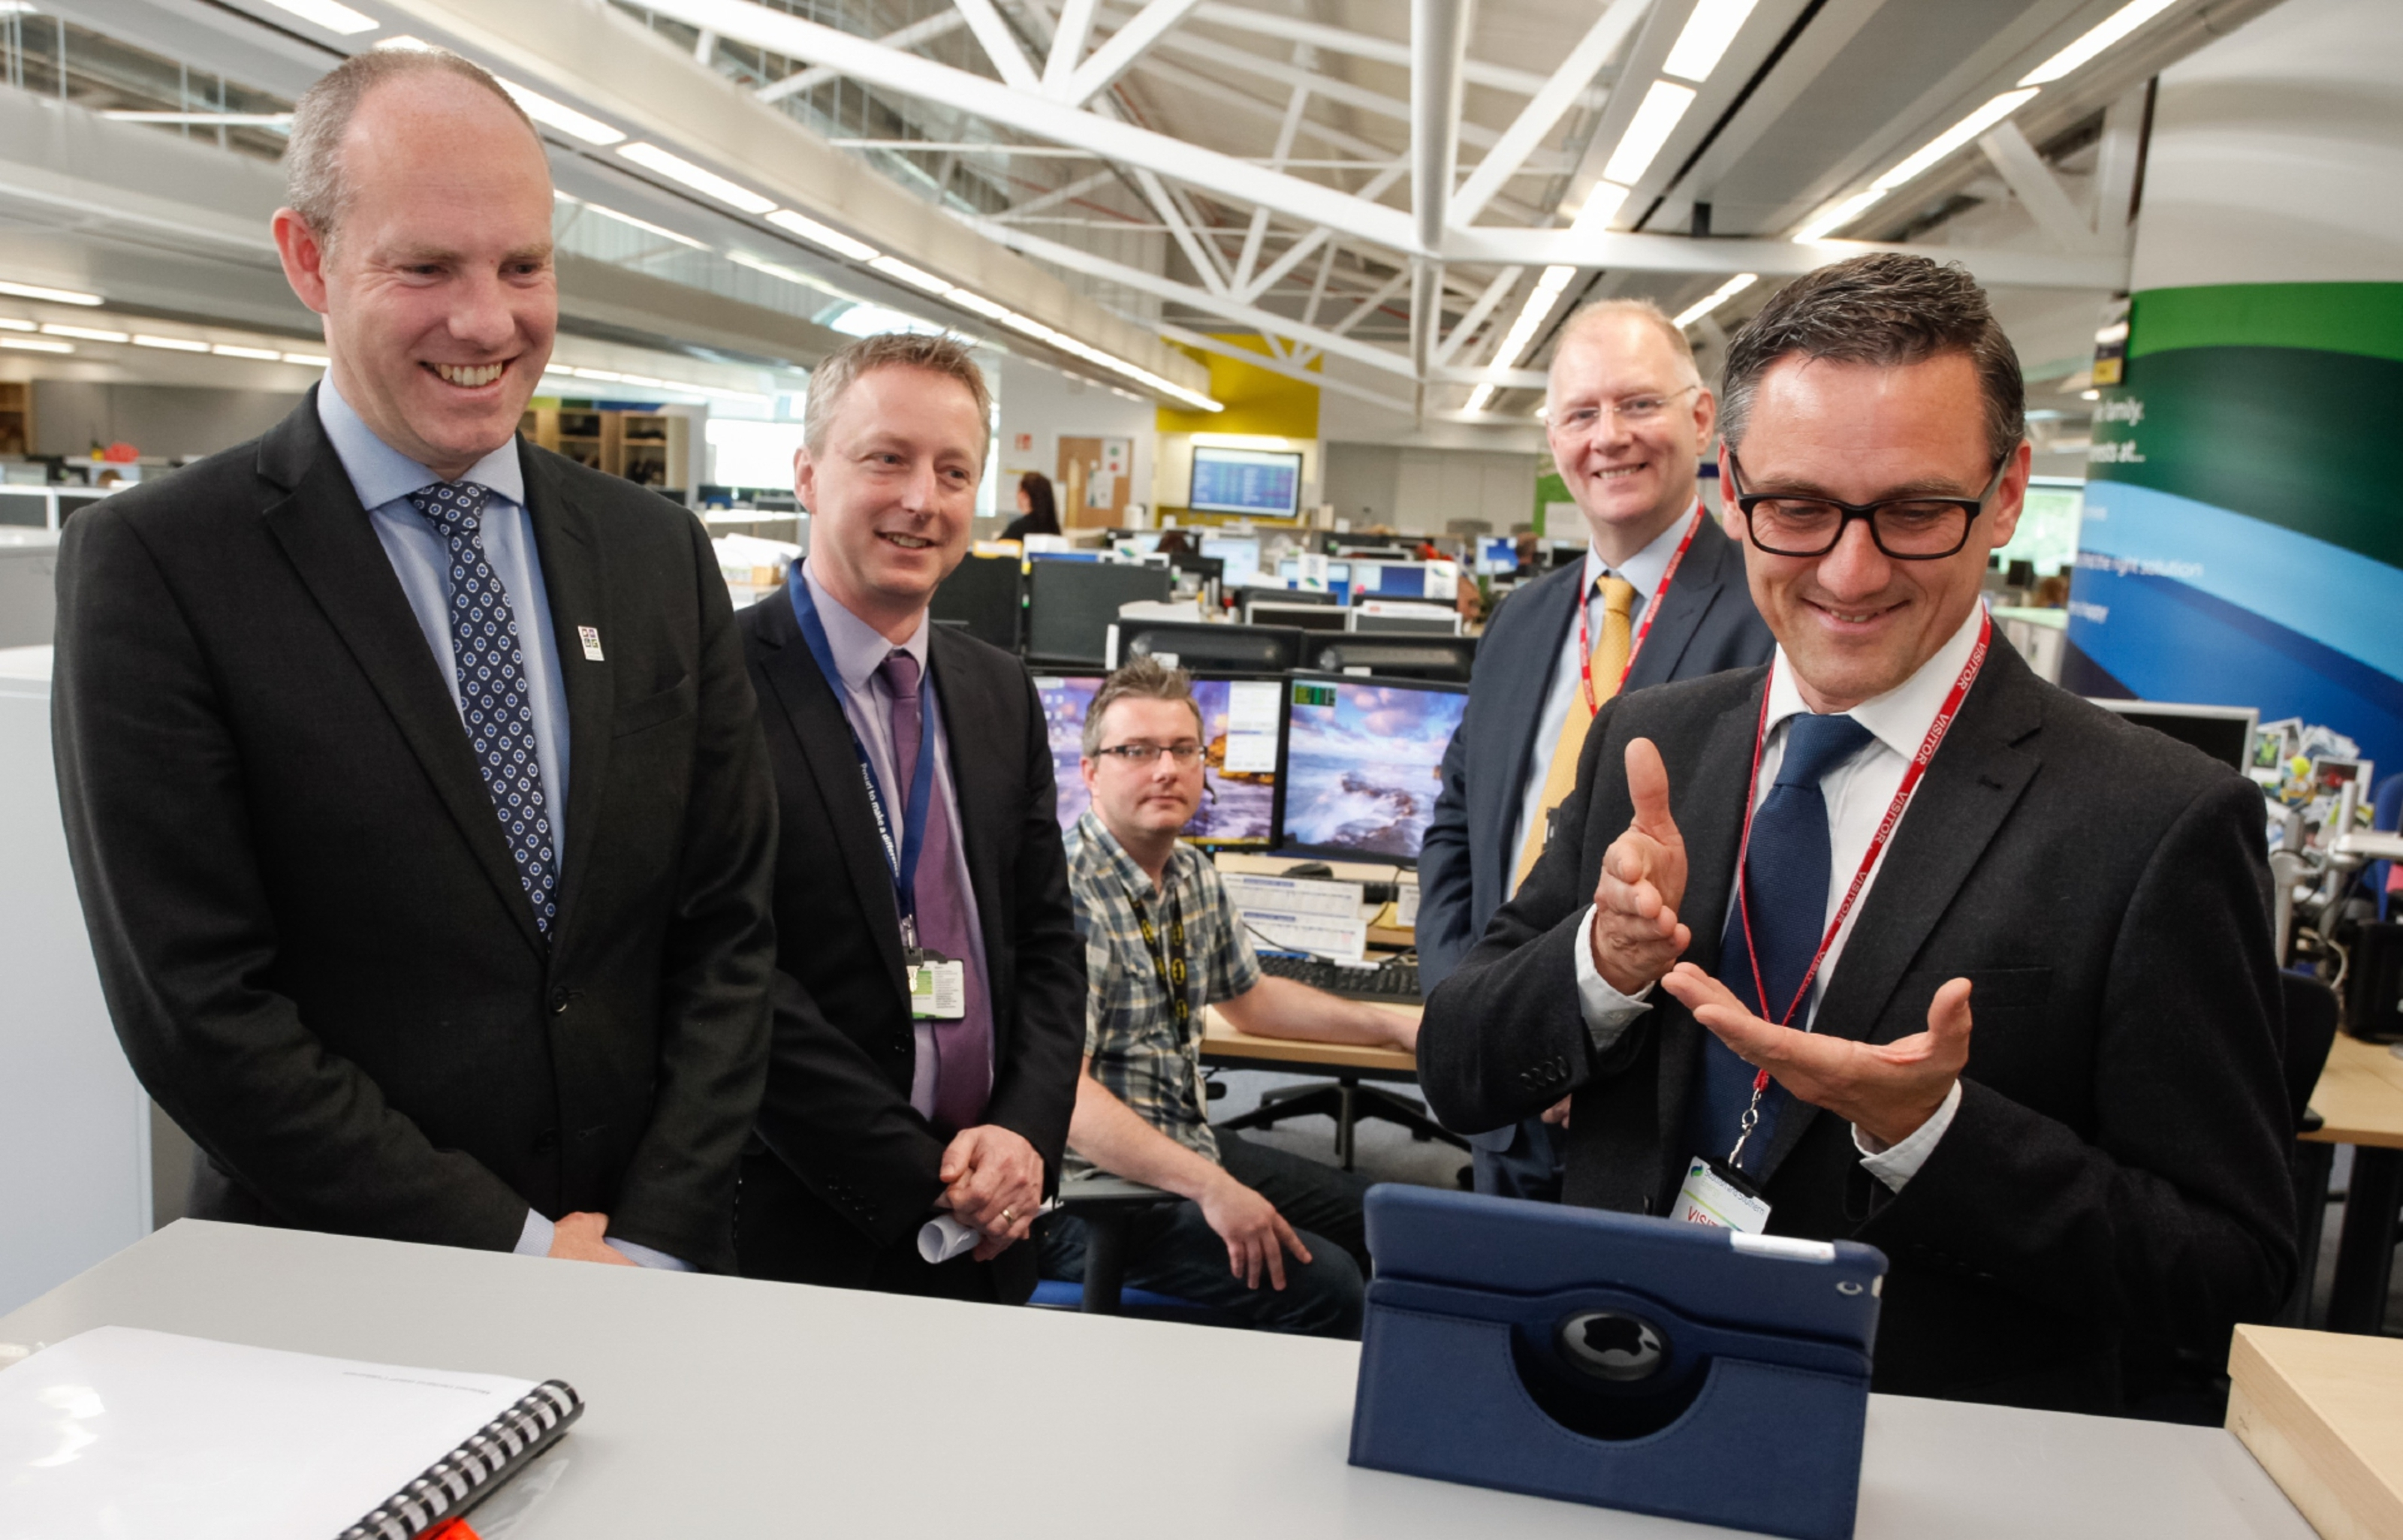 Executives look on as the first video sign call is made from an SSE call centre